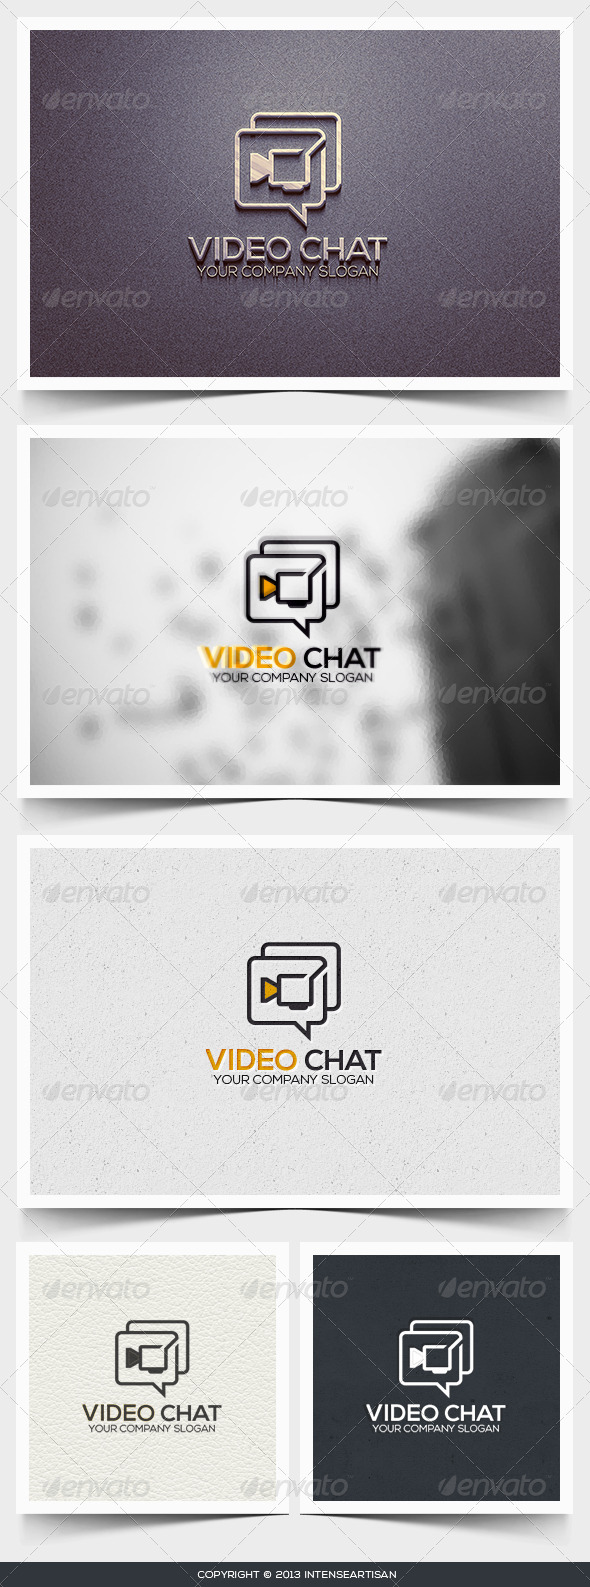 Video Chat Logo Template - Objects Logo Templates